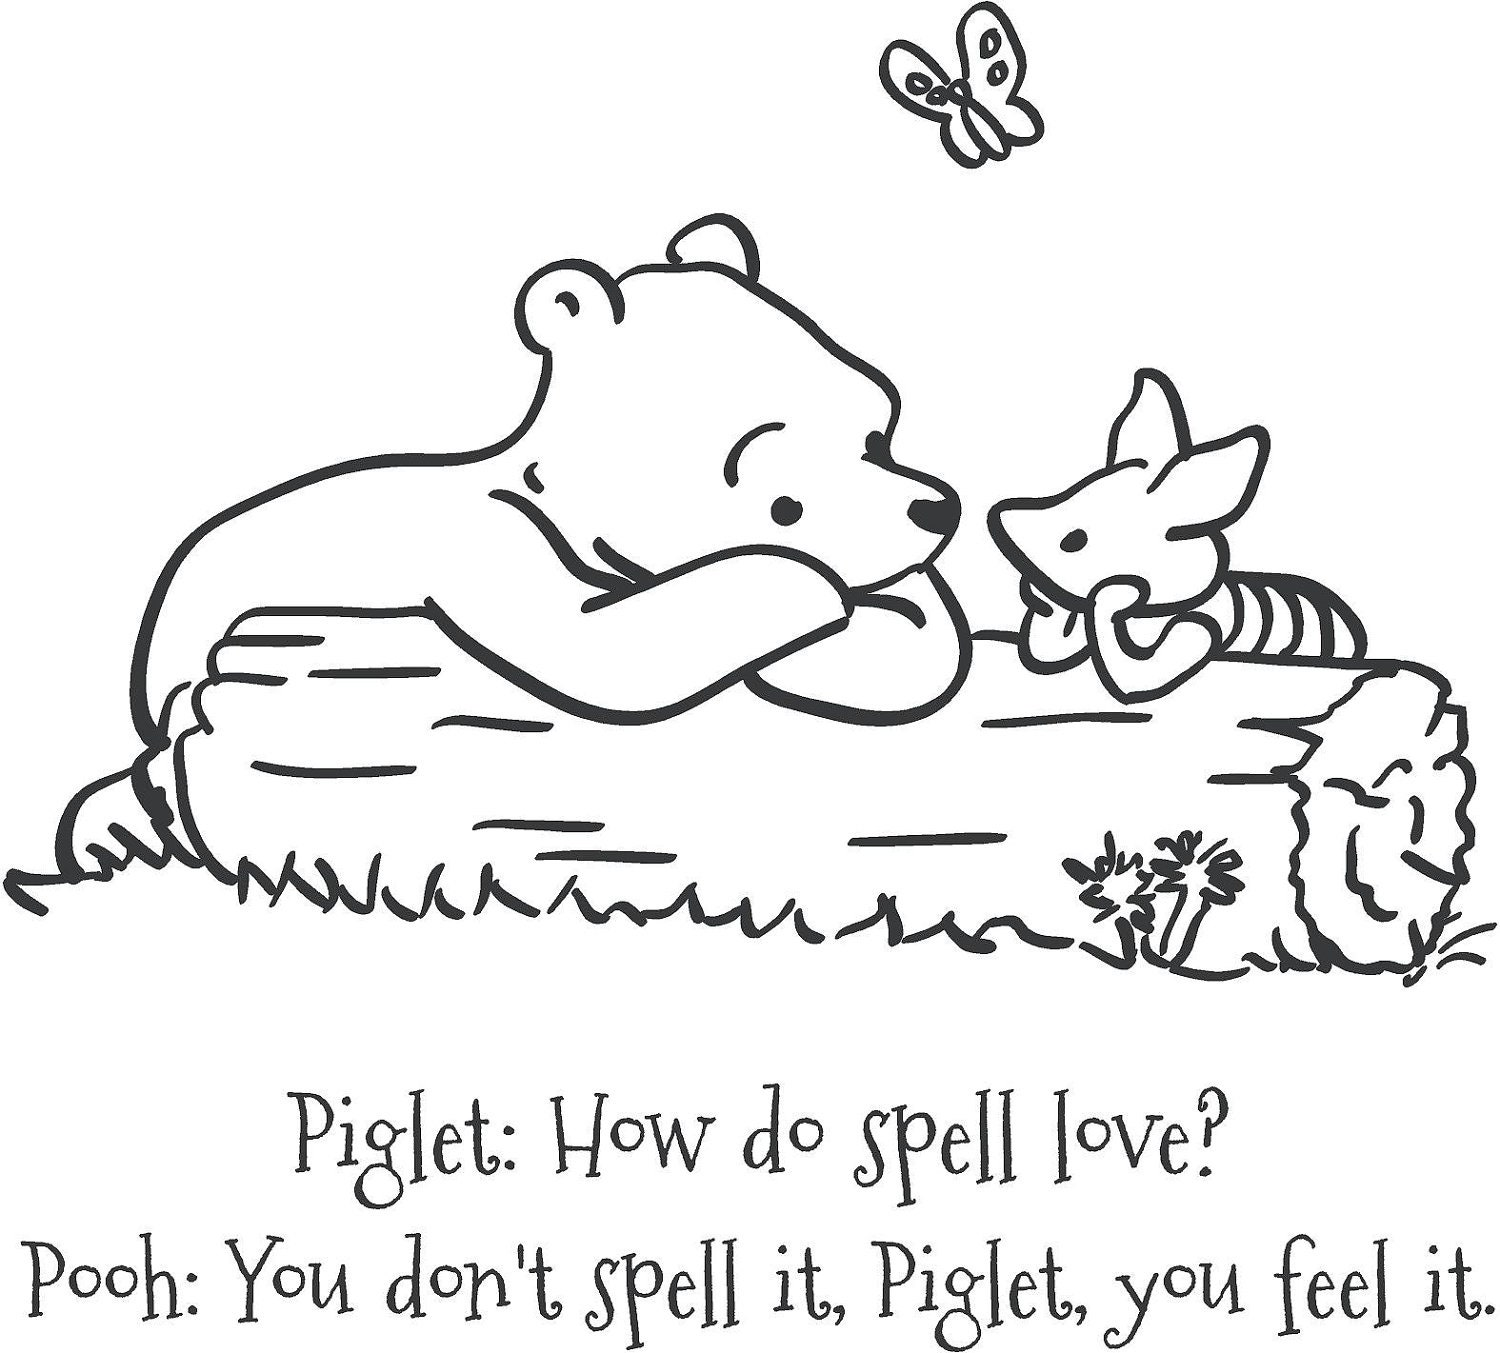 Piglet And Winnie The Pooh Quotes: Classic Winnie The Pooh And Piglet How Do You By